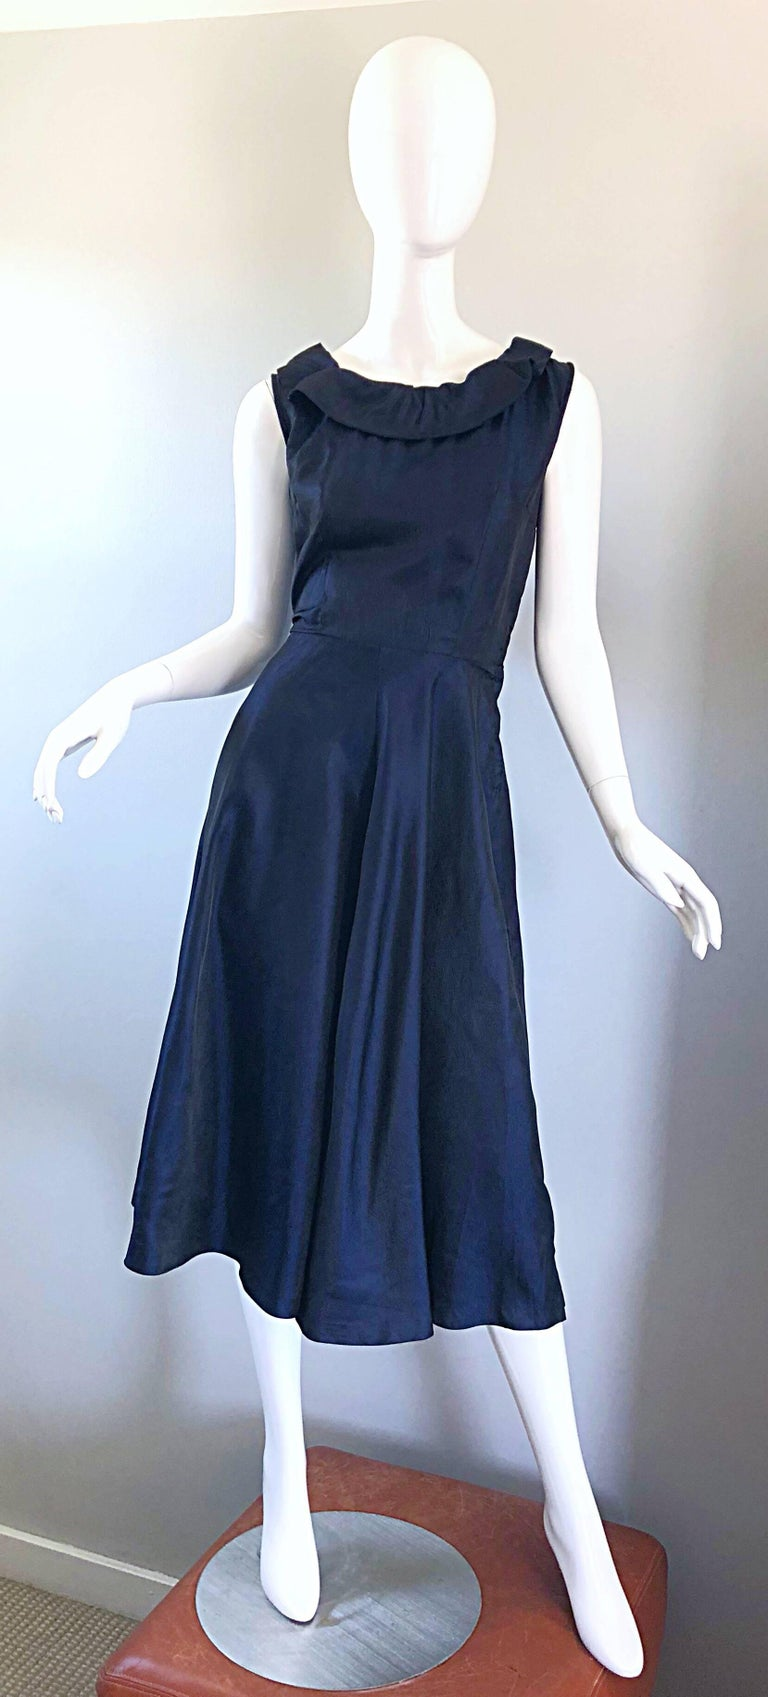 fc89008f65e Beautiful 1950s navy blue silk dress! Features a fitted bodice with chic  ties at top